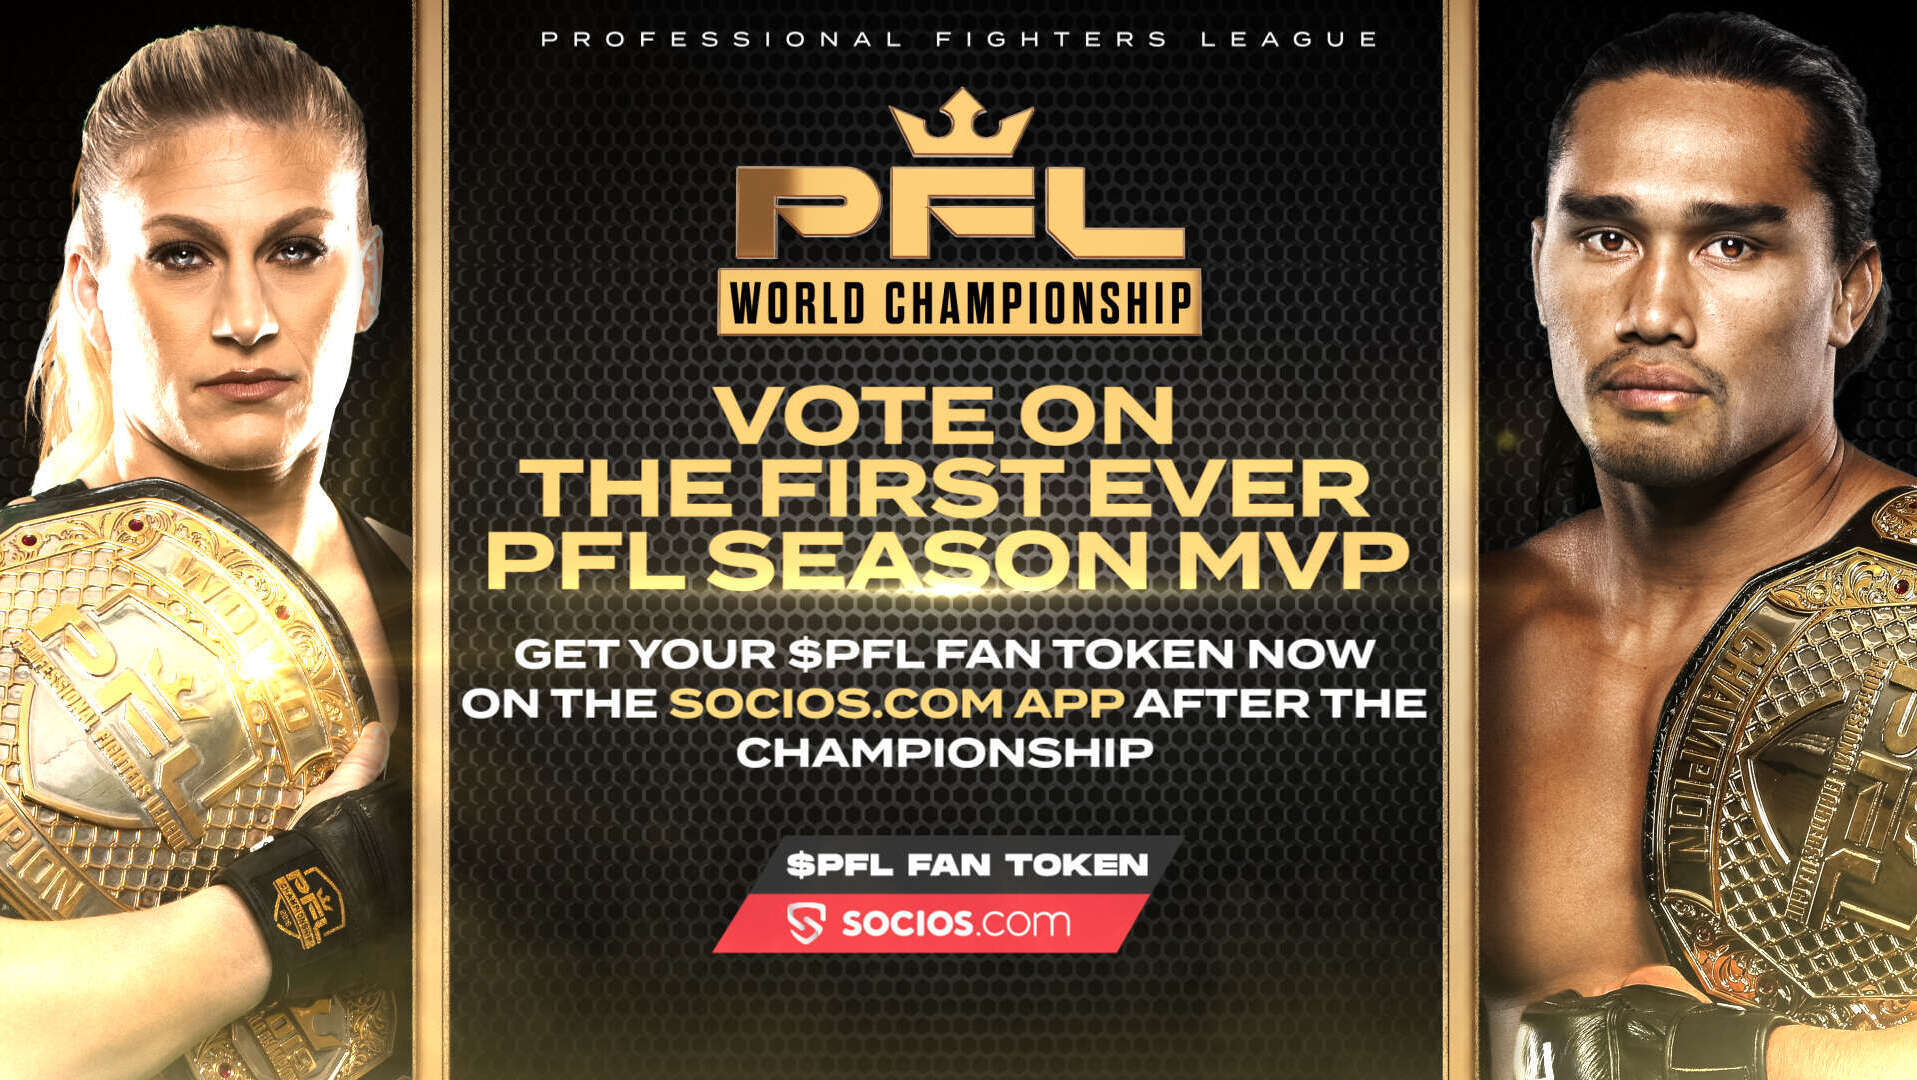 PROFESSIONAL FIGHTERS LEAGUE UNVEILS 2021 SEASON MVP AWARD TO BE CHOSEN WITH $PFL FAN TOKEN ON SOCIOS.COM